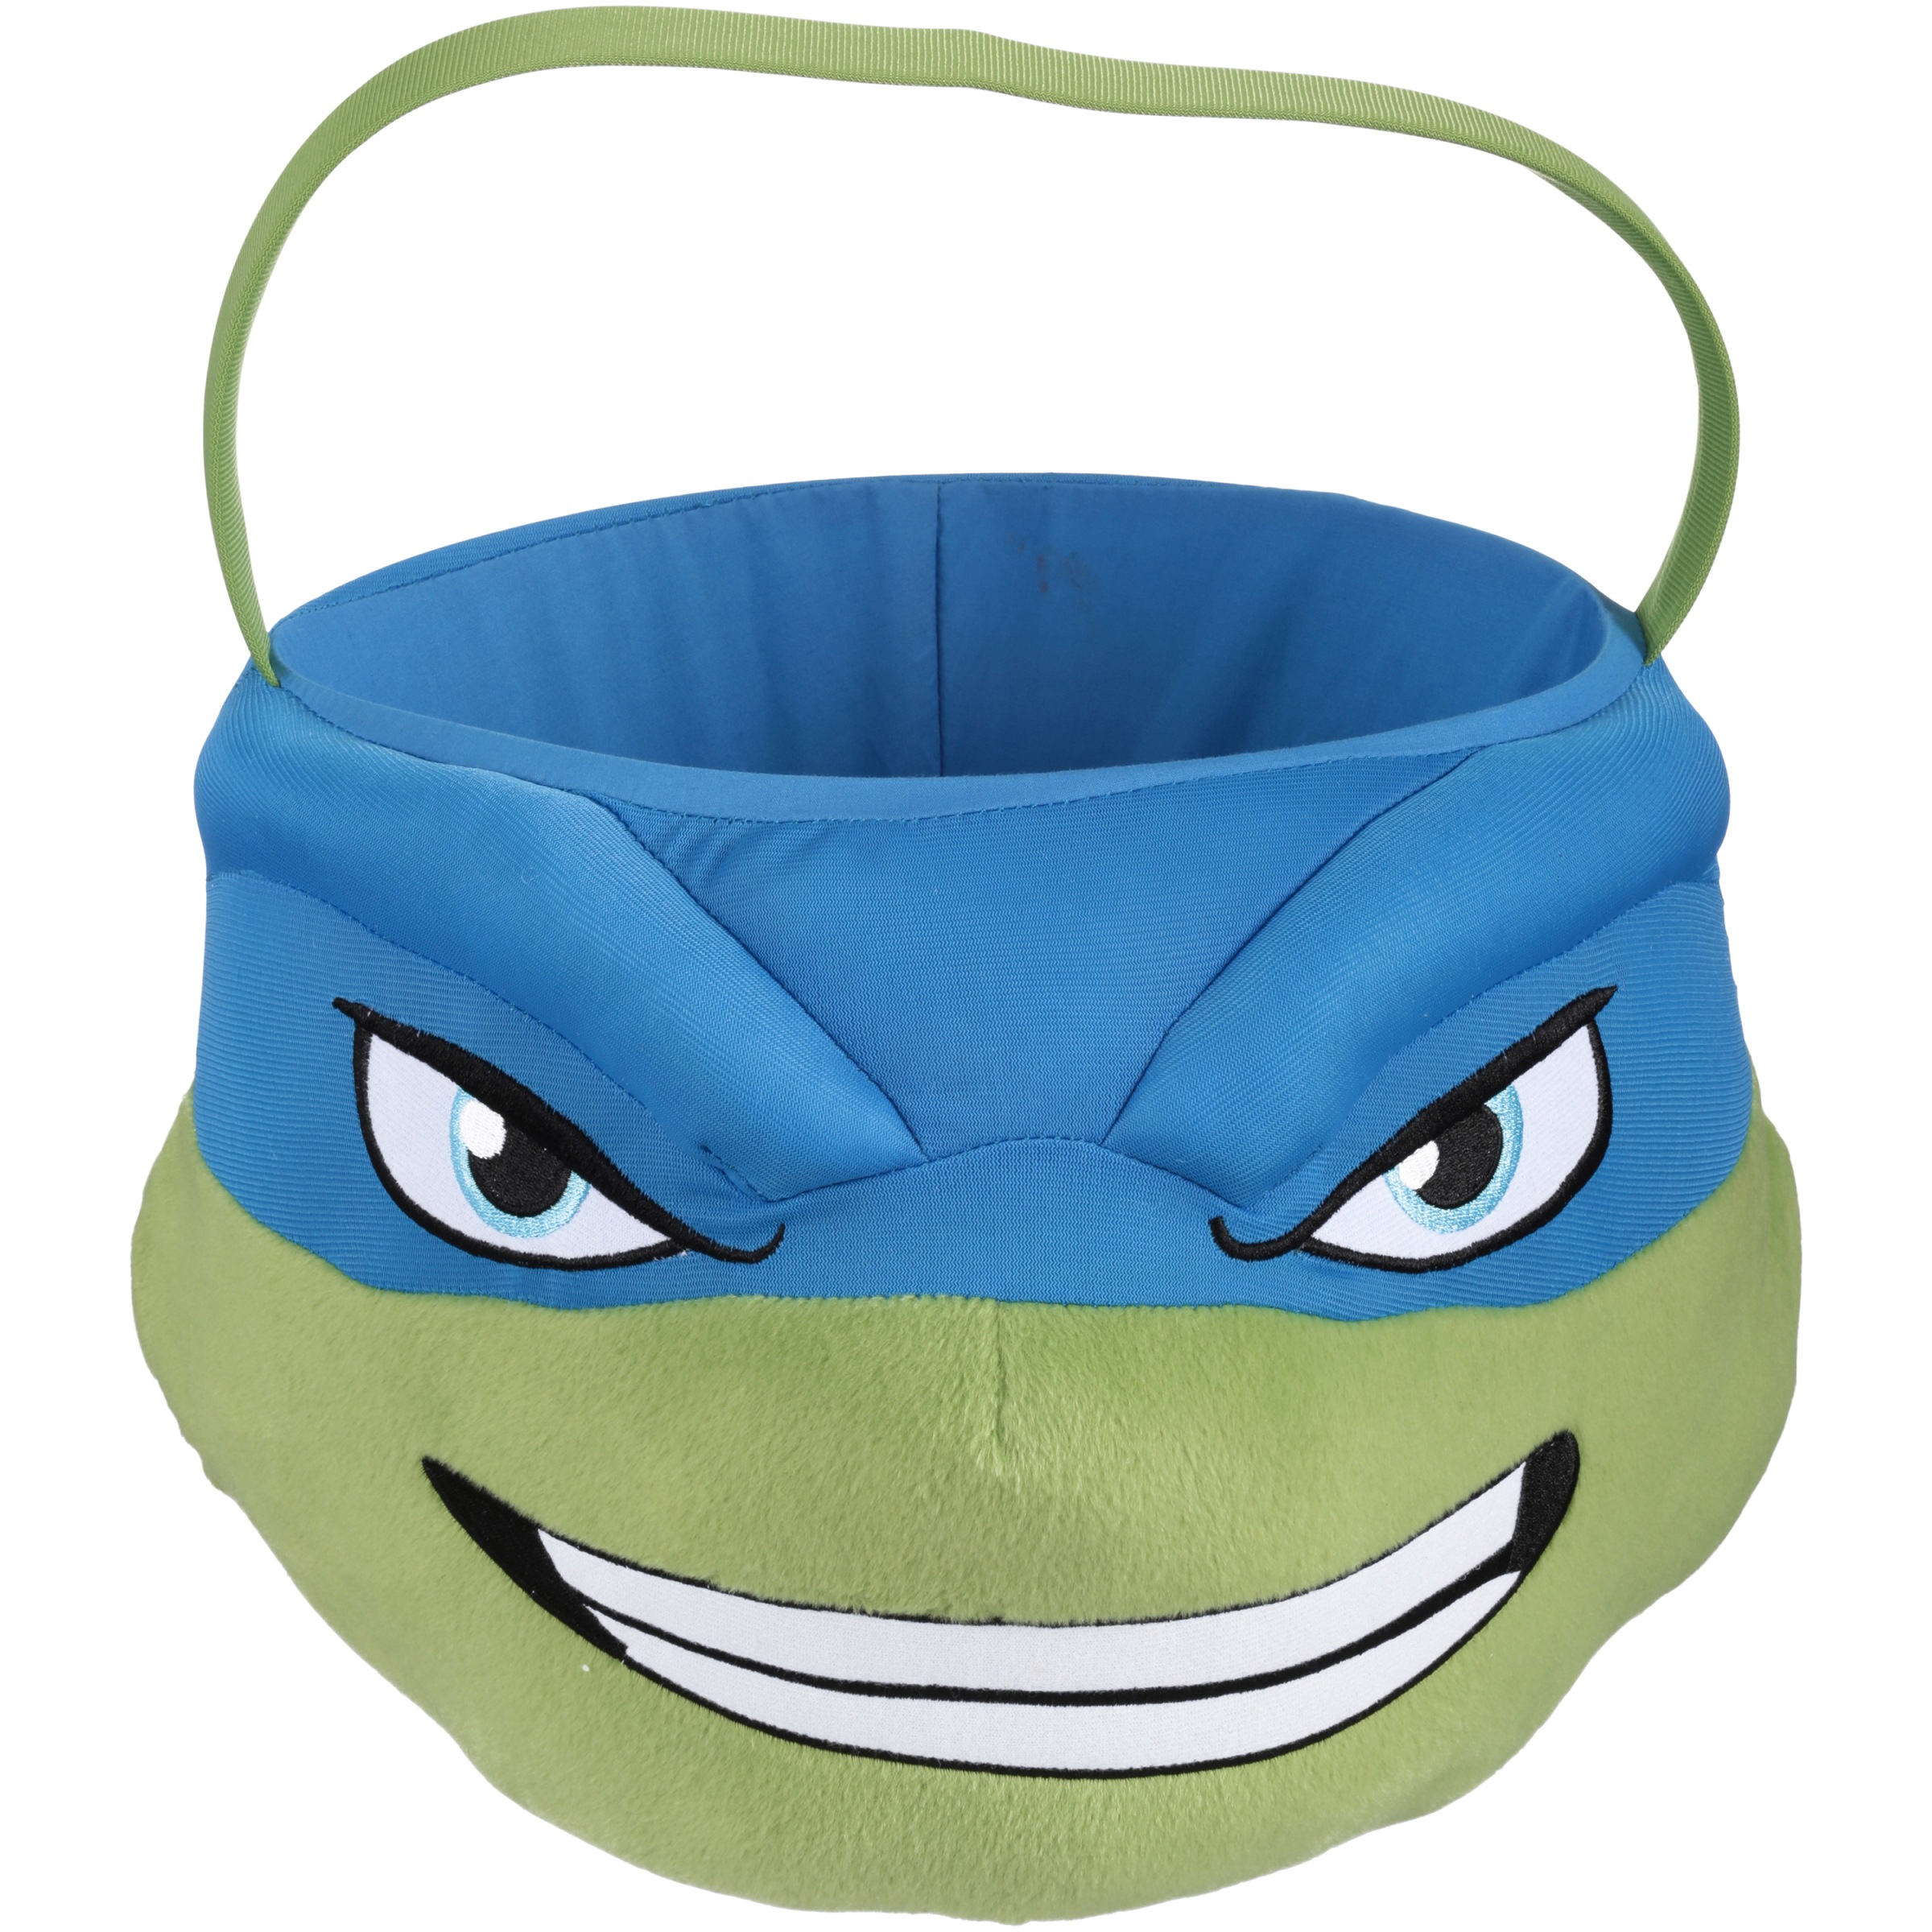 Nickelodeon Teenage Mutant Ninja Turtlez Jumbo Plush Basket by Wal-Mart Stores, Inc.